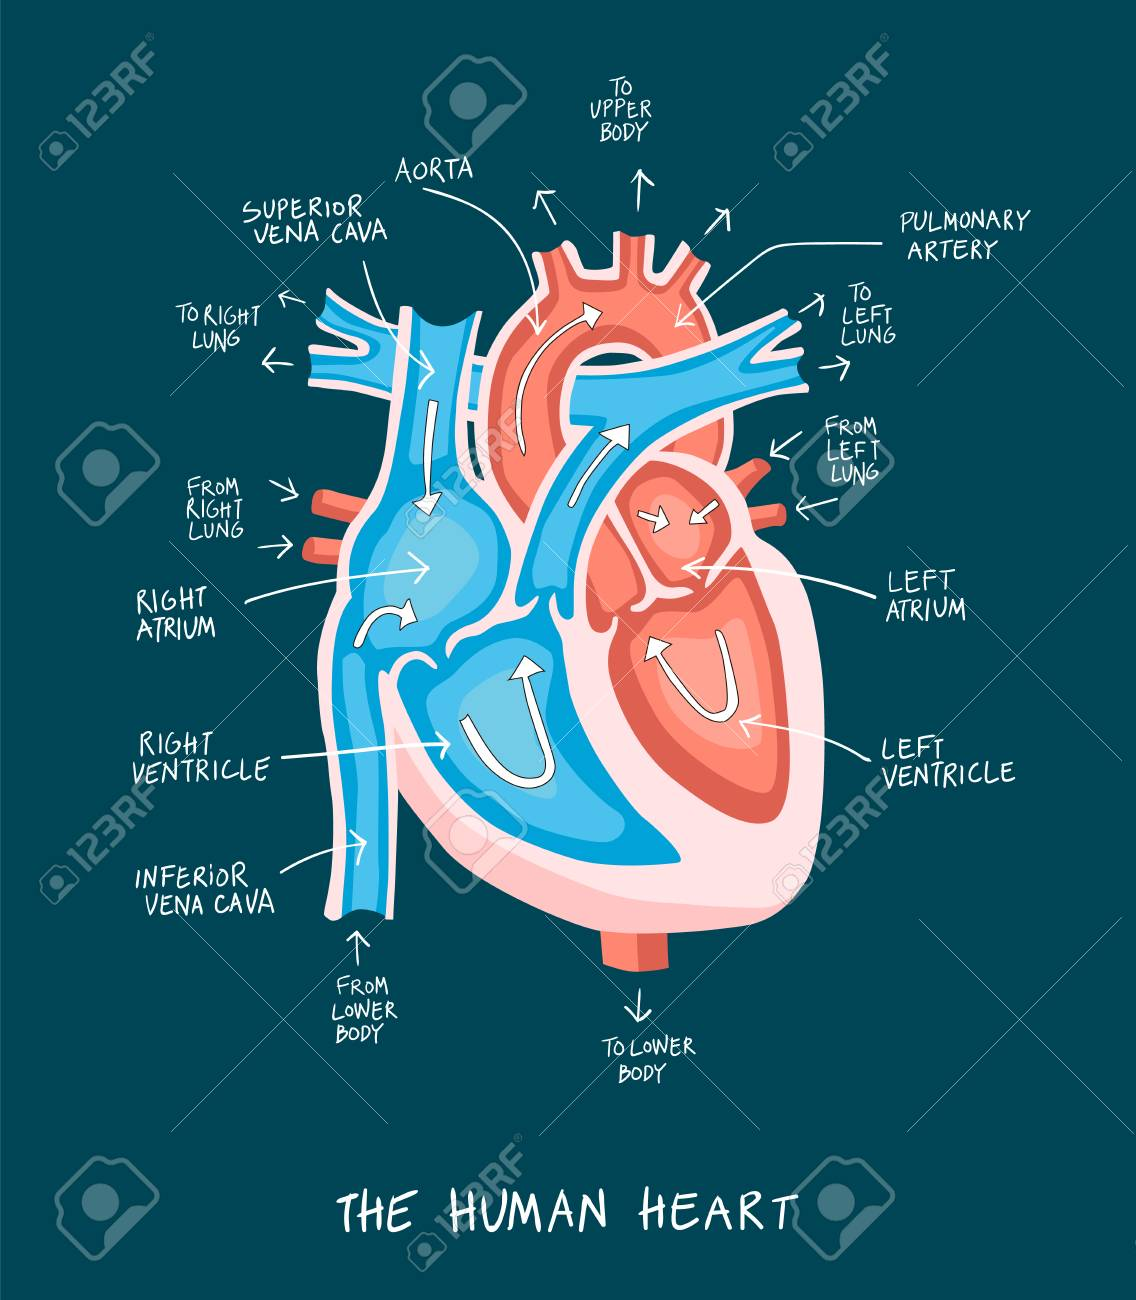 Hand drawn illustration of human heart anatomy educational hand drawn illustration of human heart anatomy educational diagram showing blood flow with main parts ccuart Images